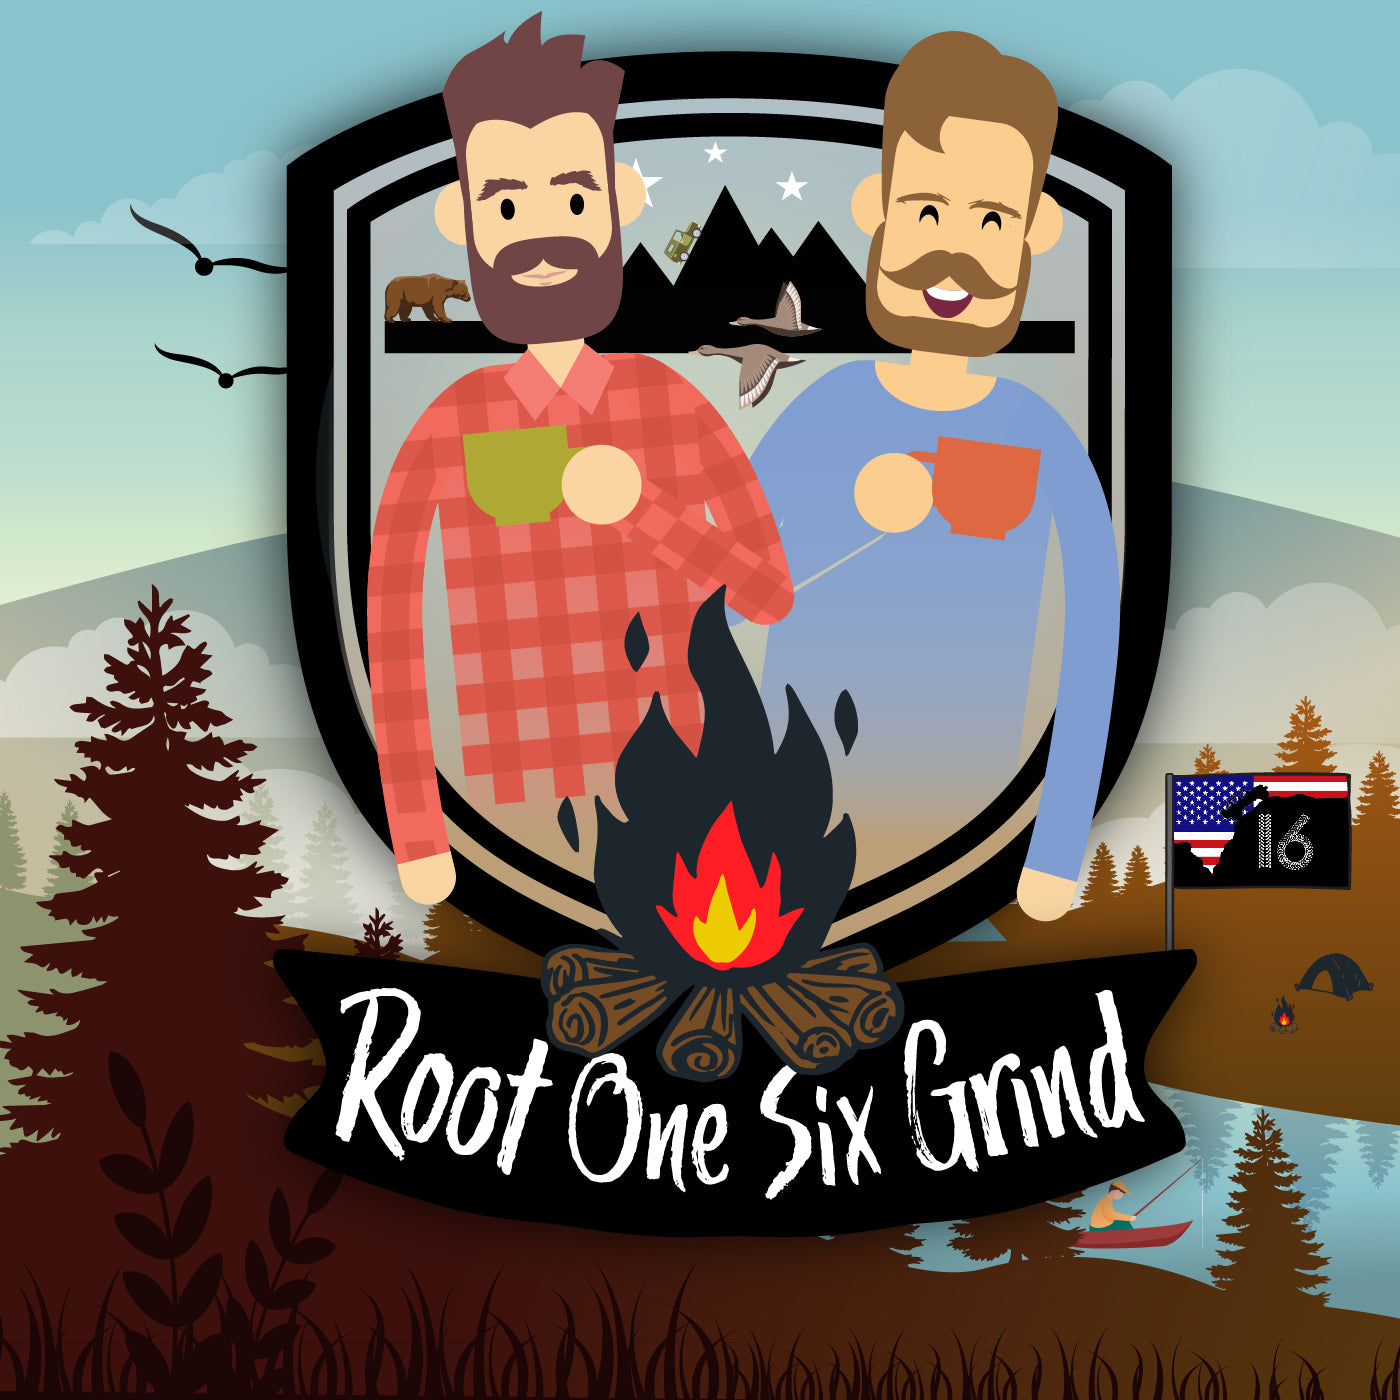 Coming Soon-The ROOT ONE SIX GRIND!!!